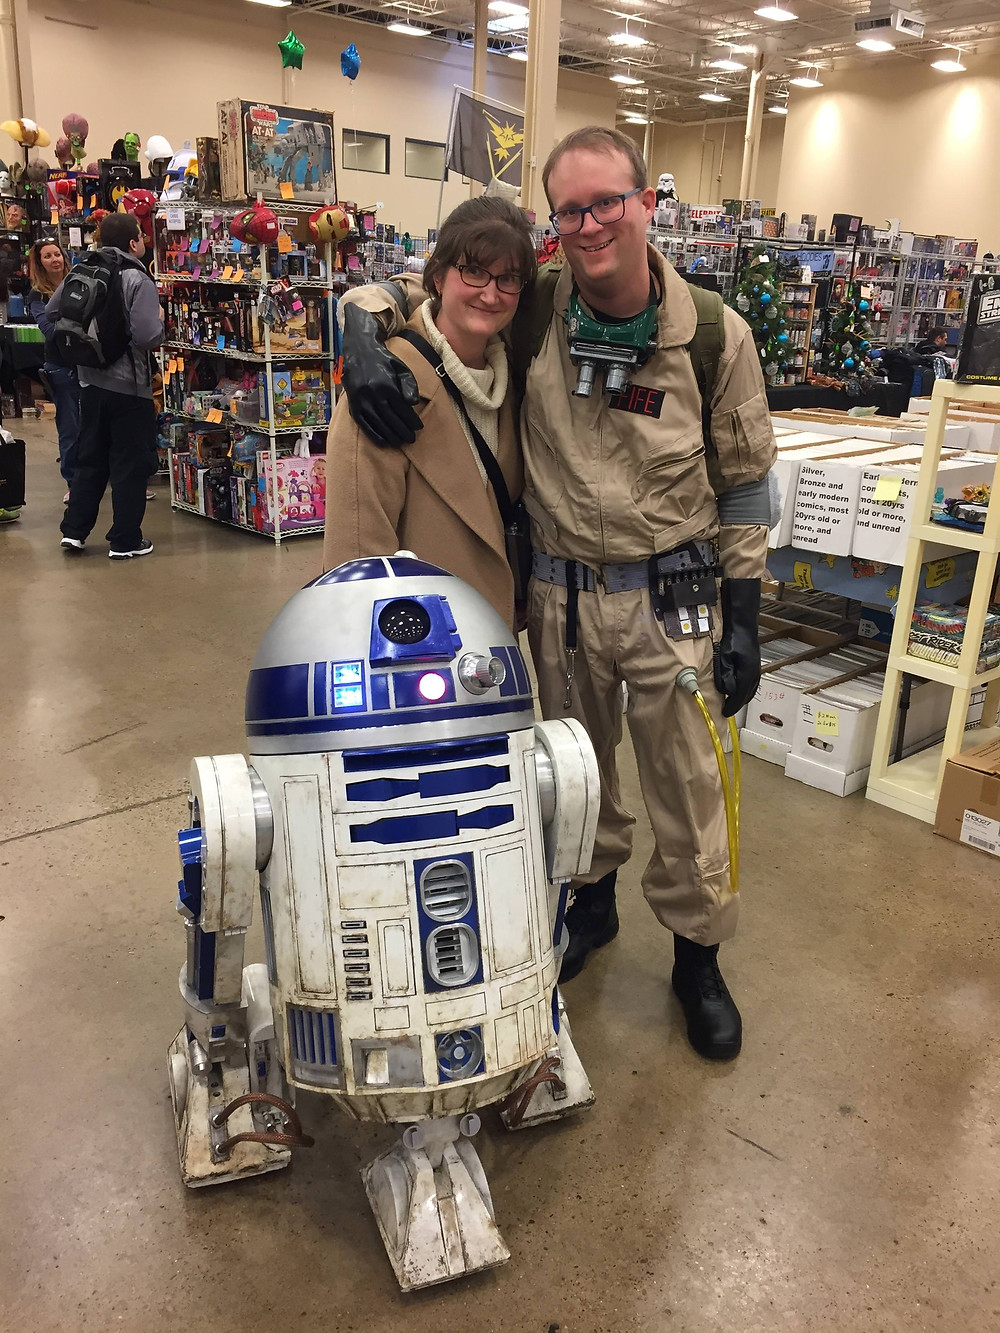 Steel City Comic Con Ghostbusters cosplay with R2-D2 Star Wars.